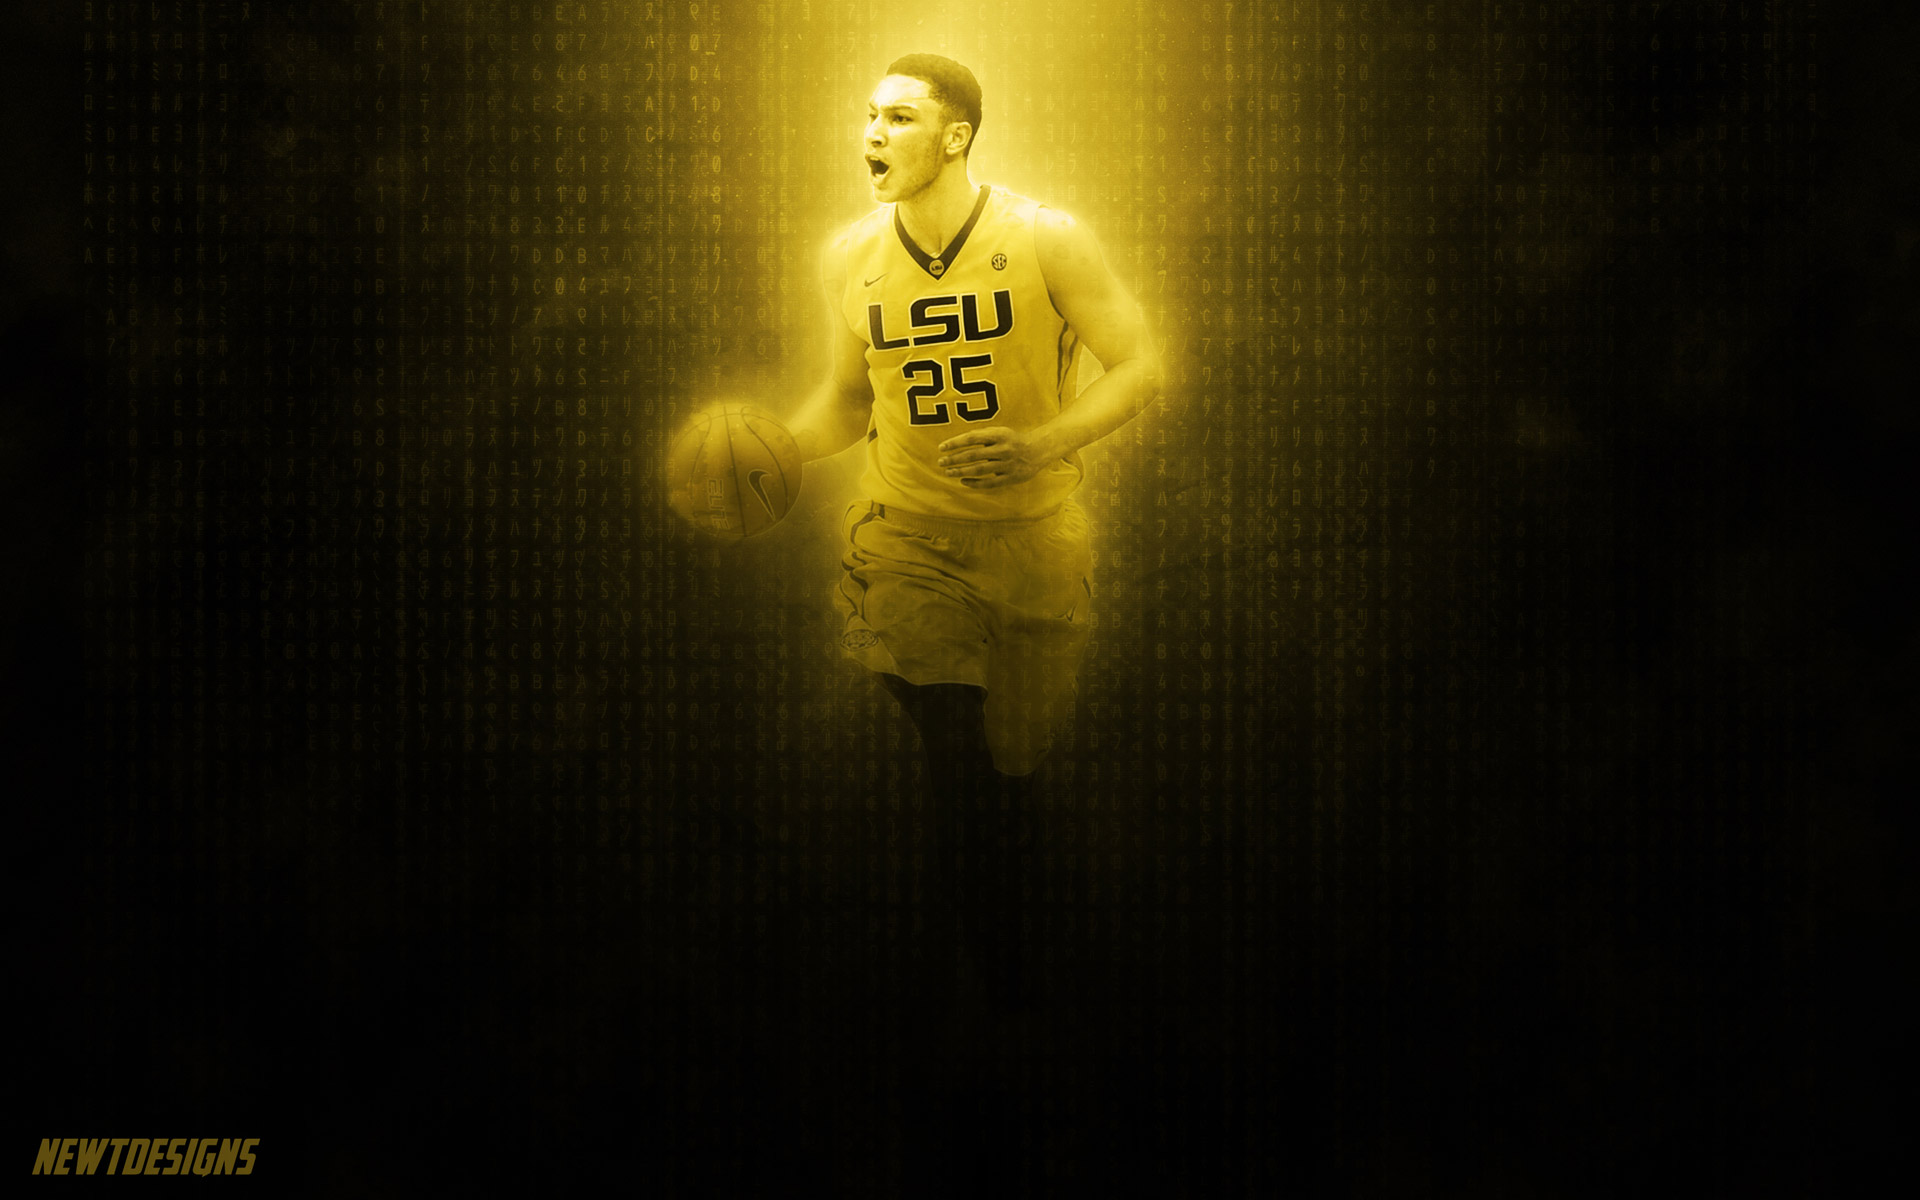 Ben Simmons LSU Tigers 2016 Wallpaper